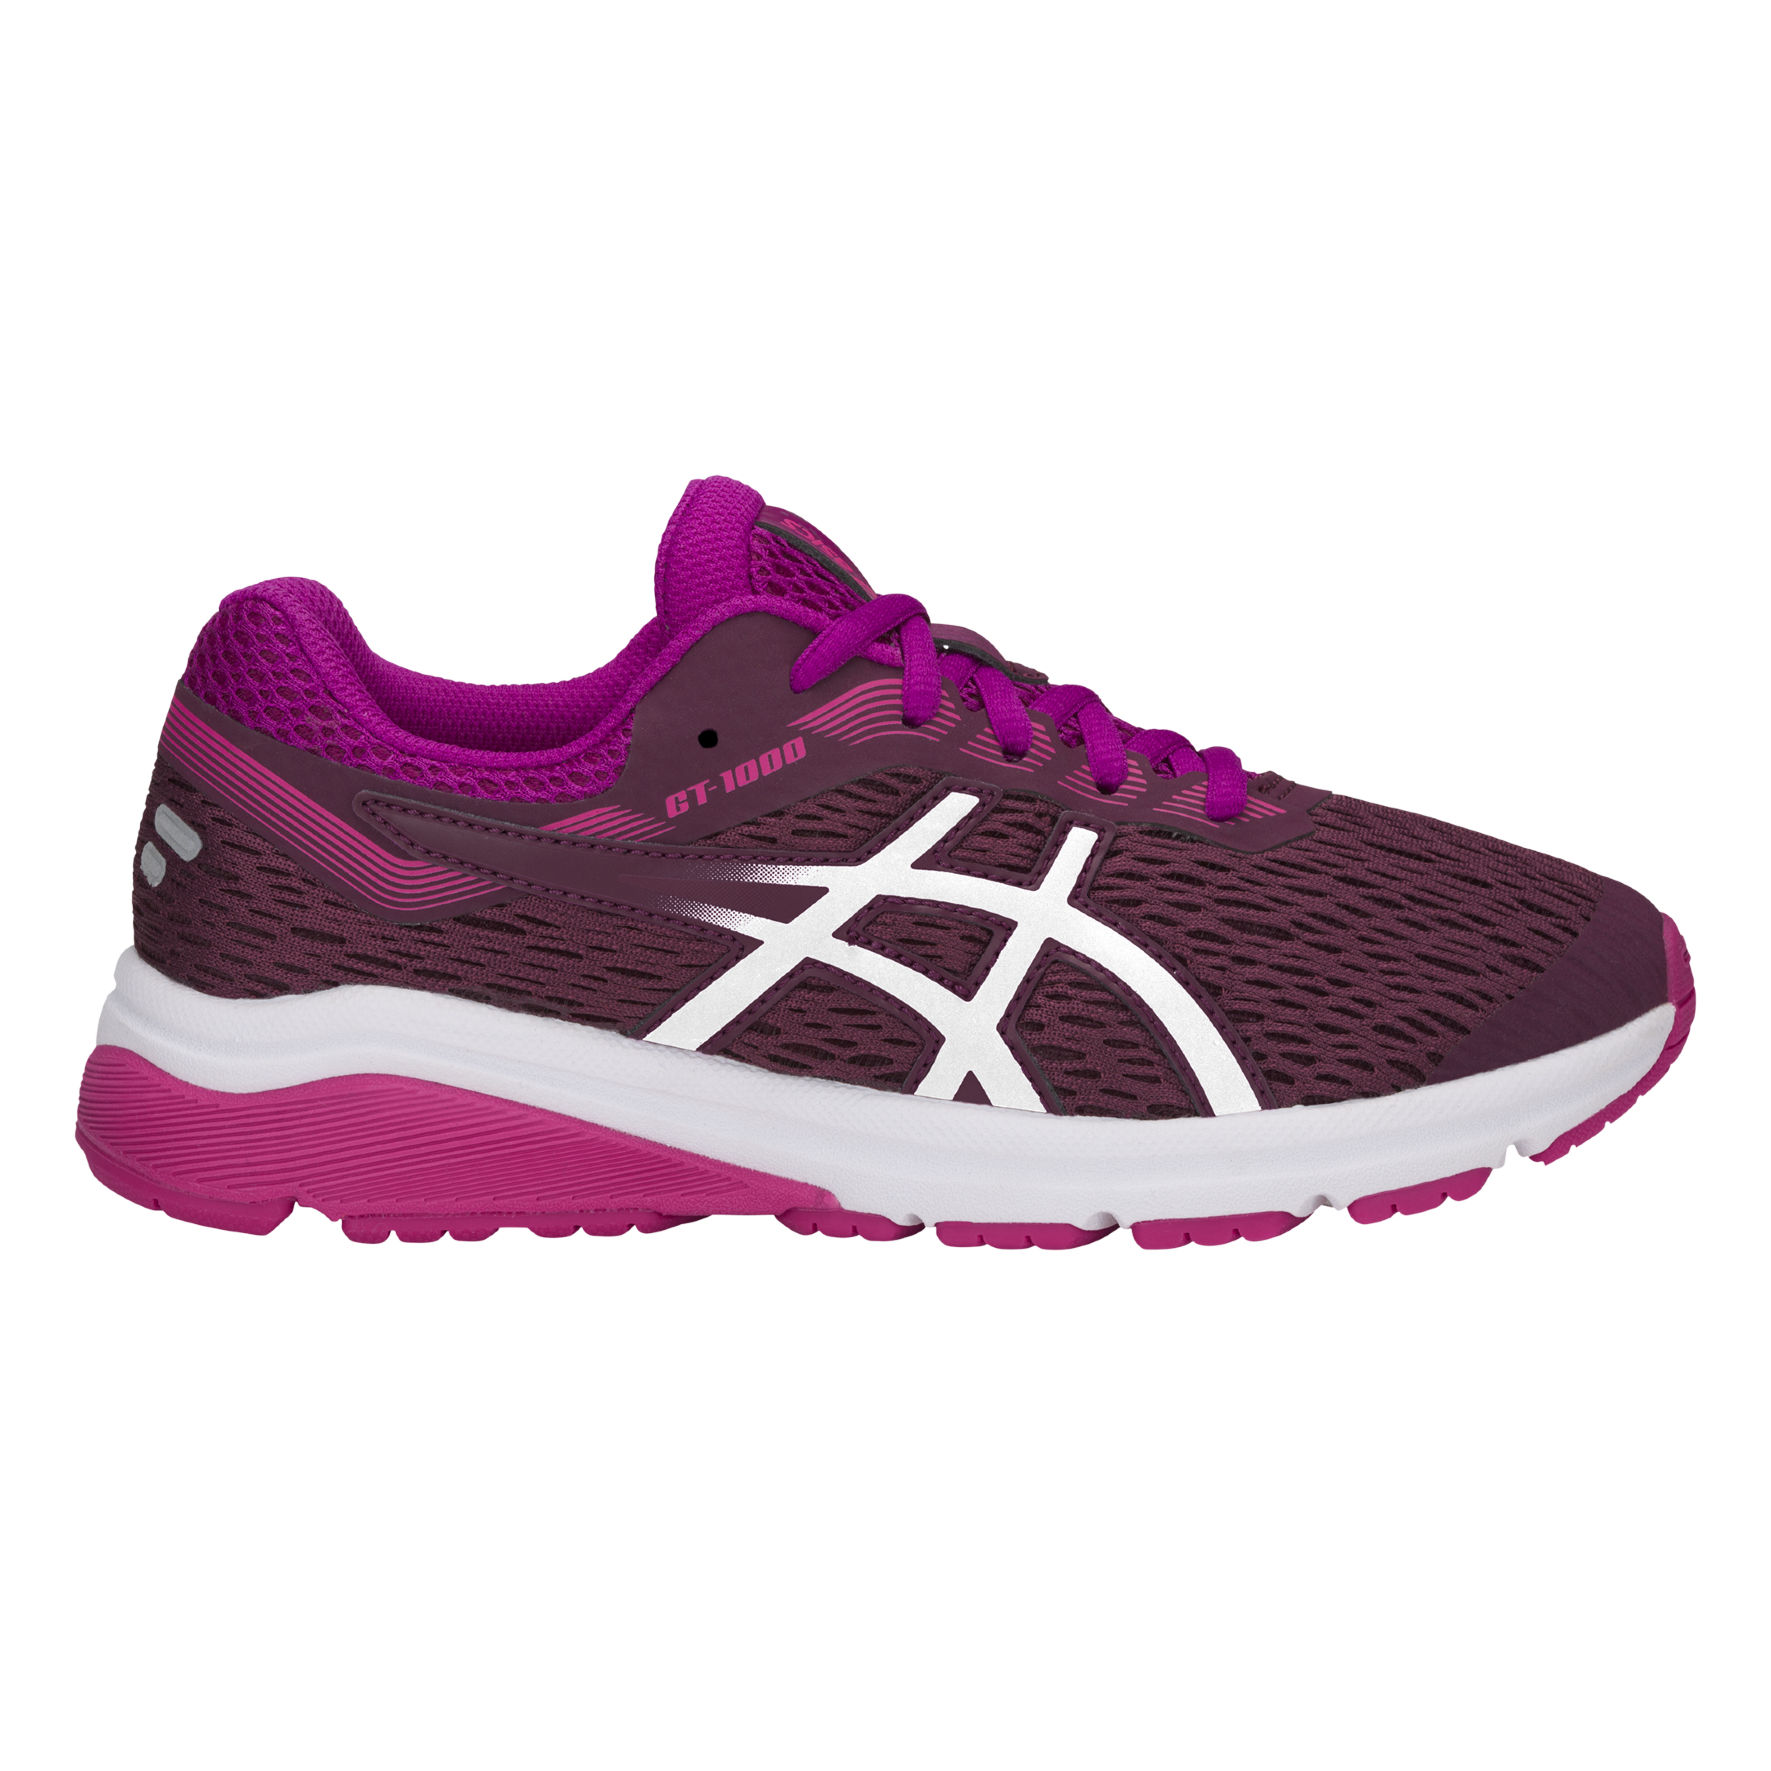 Asics GT-1000 7 GS Girls in Lila